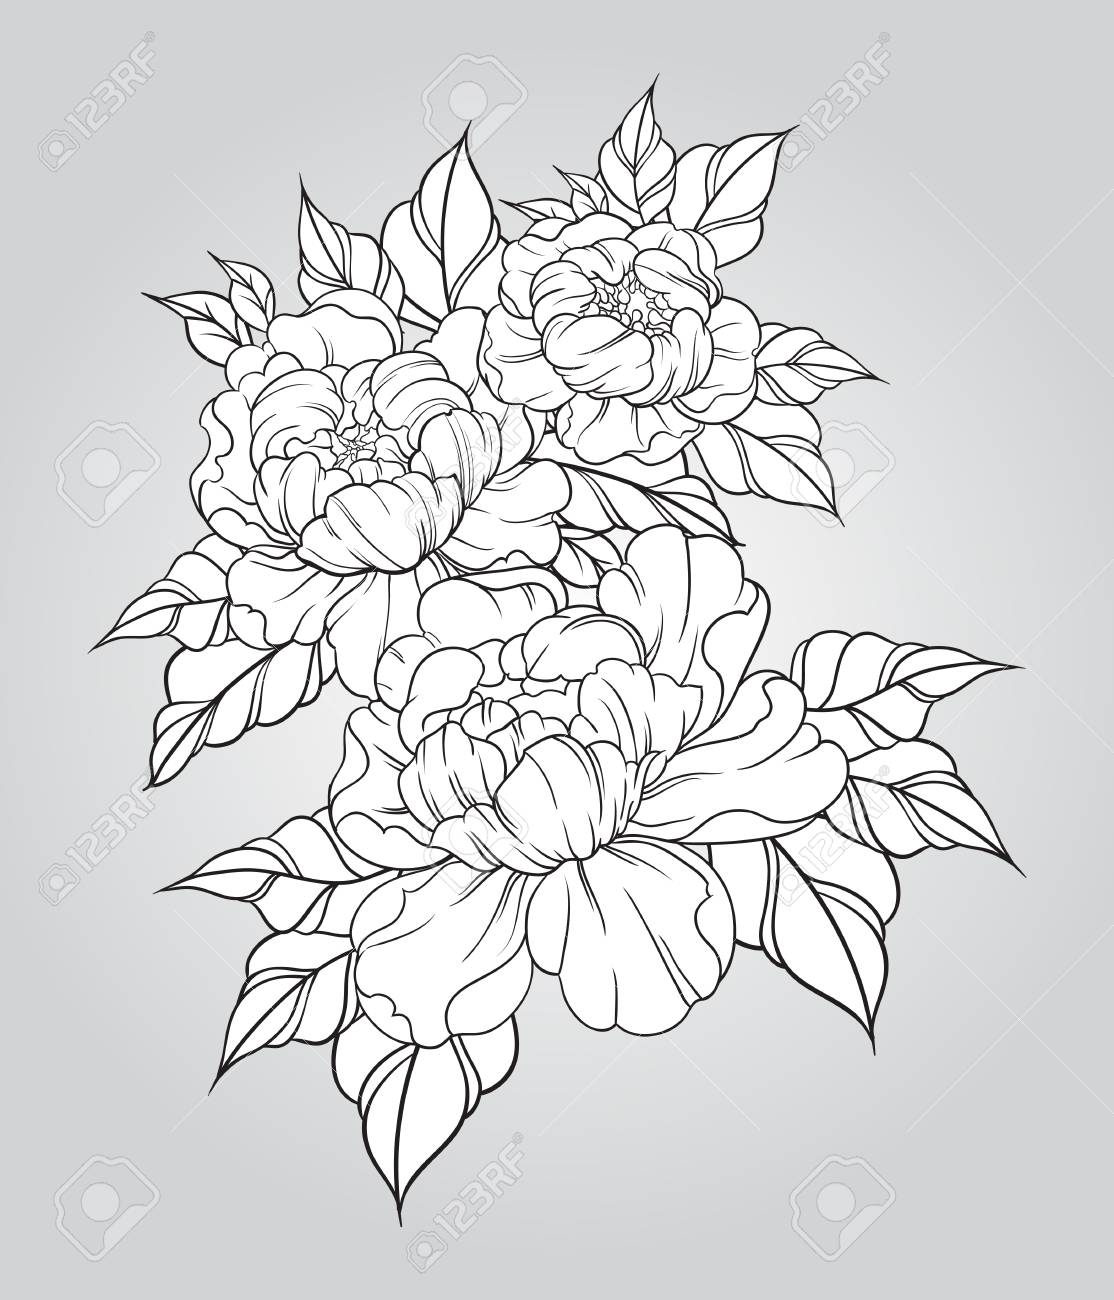 Peony Line Drawing Tattoo : Peony line drawing at getdrawings free for personal